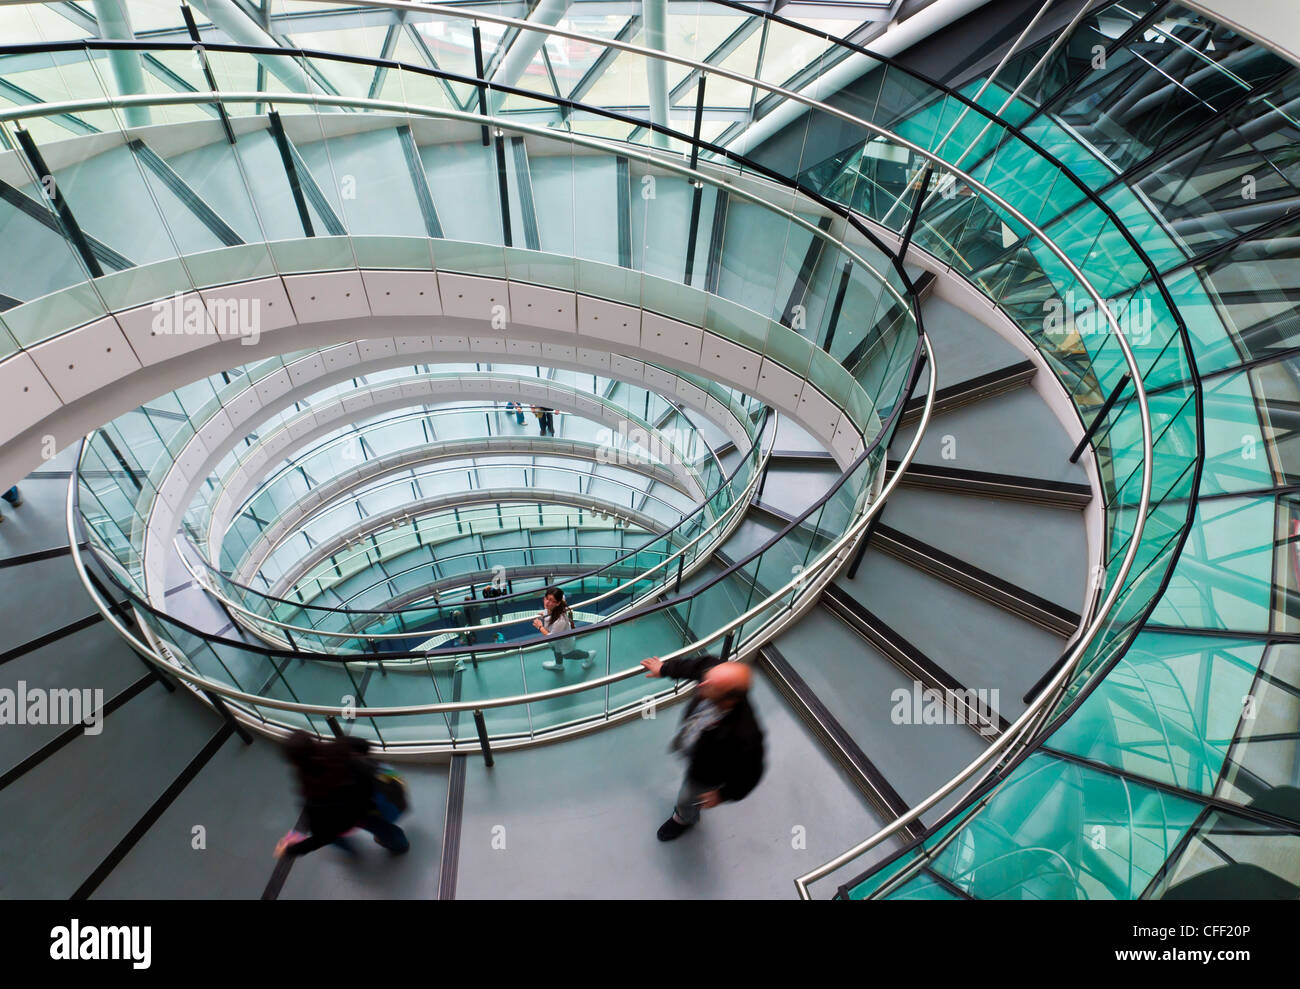 Helical staircase, City Hall, London, England, United Kingdom, Europe - Stock Image